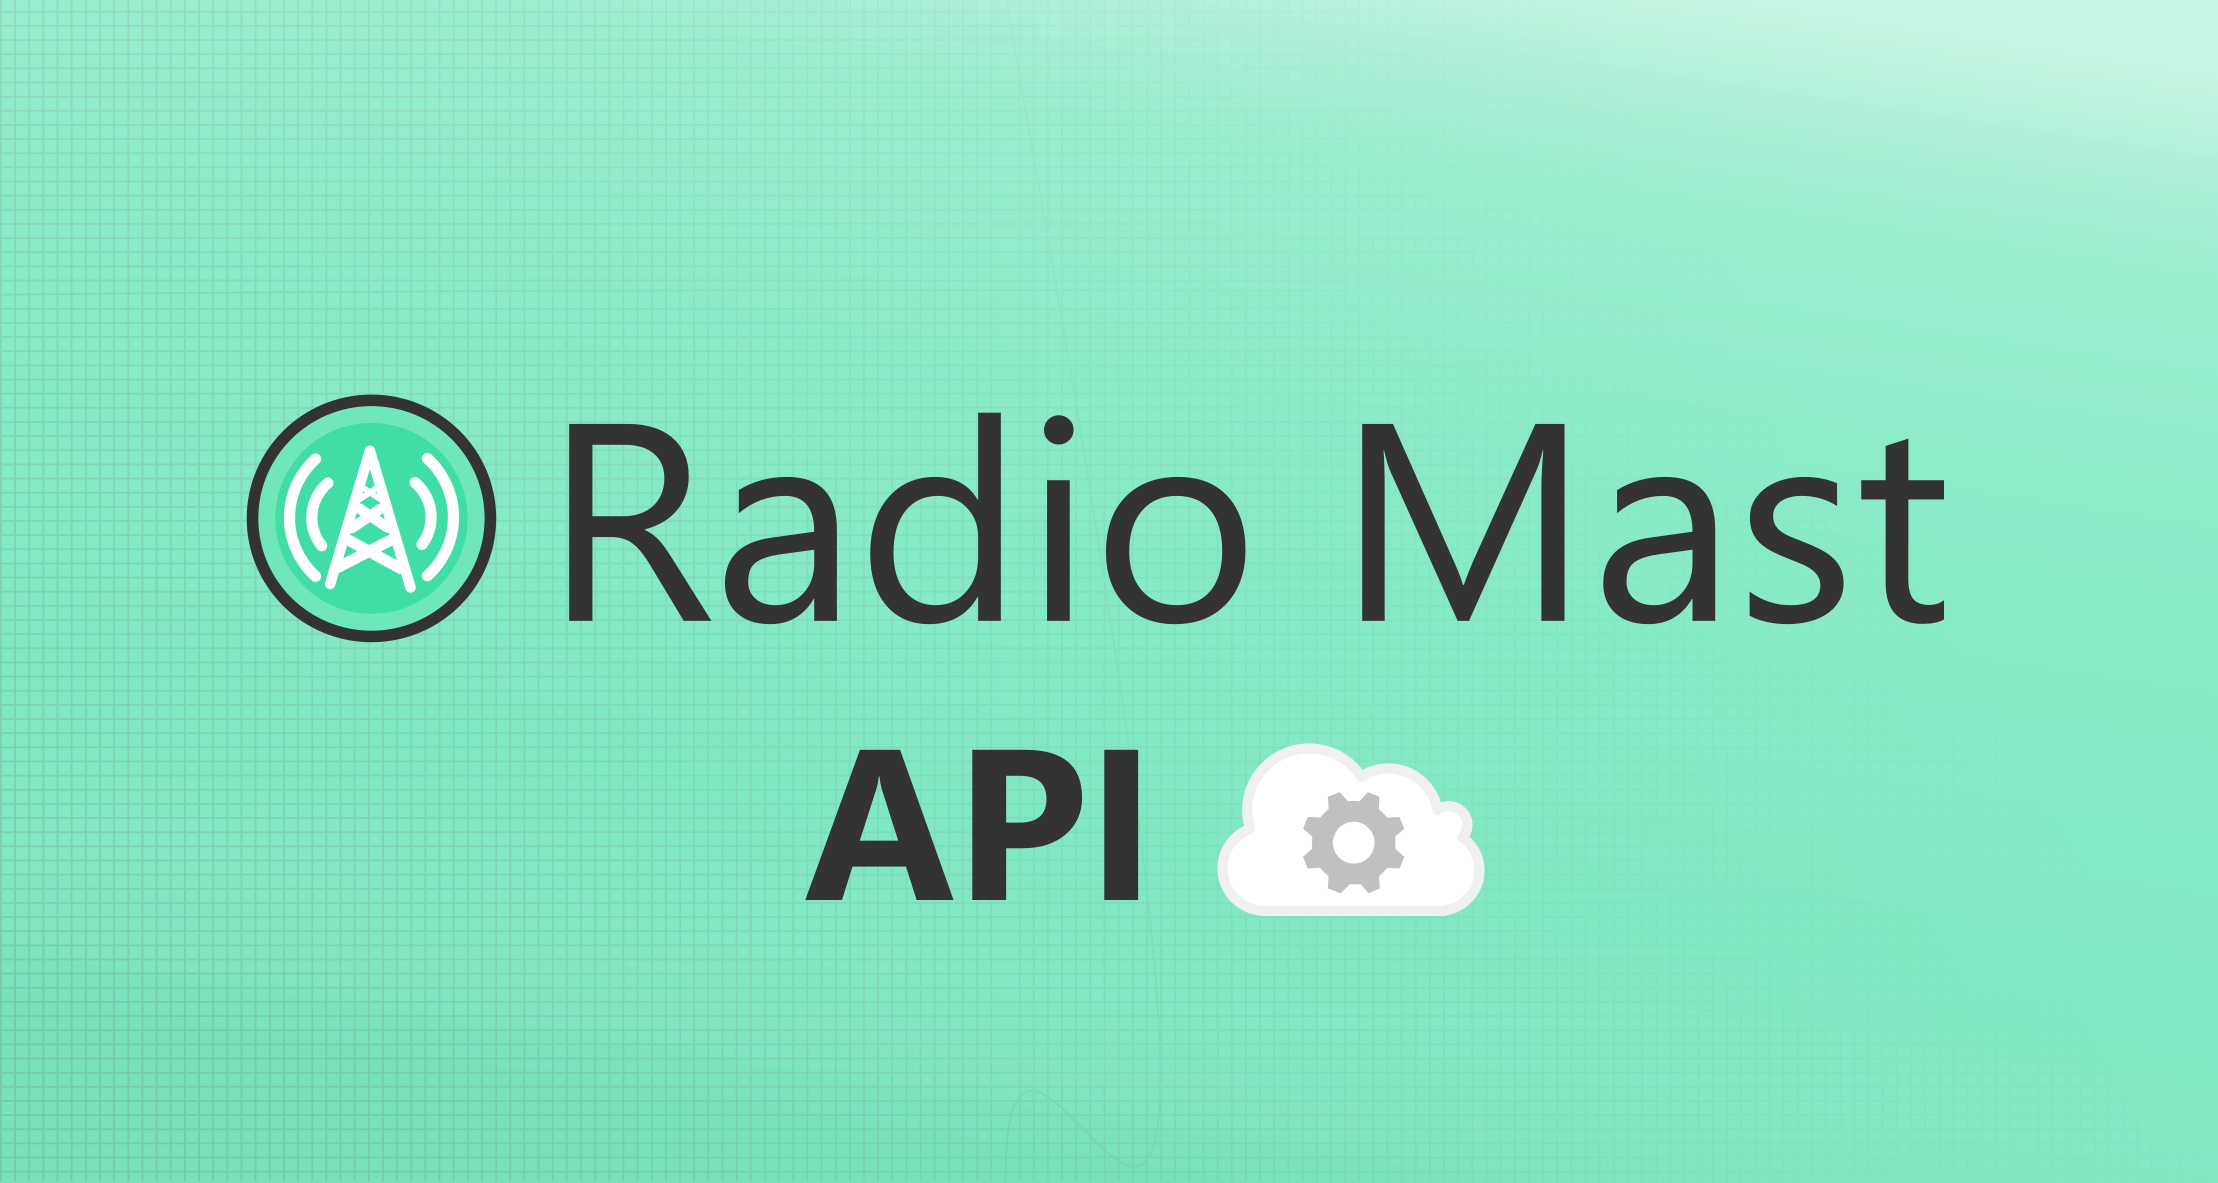 Introducing the Radio Mast API